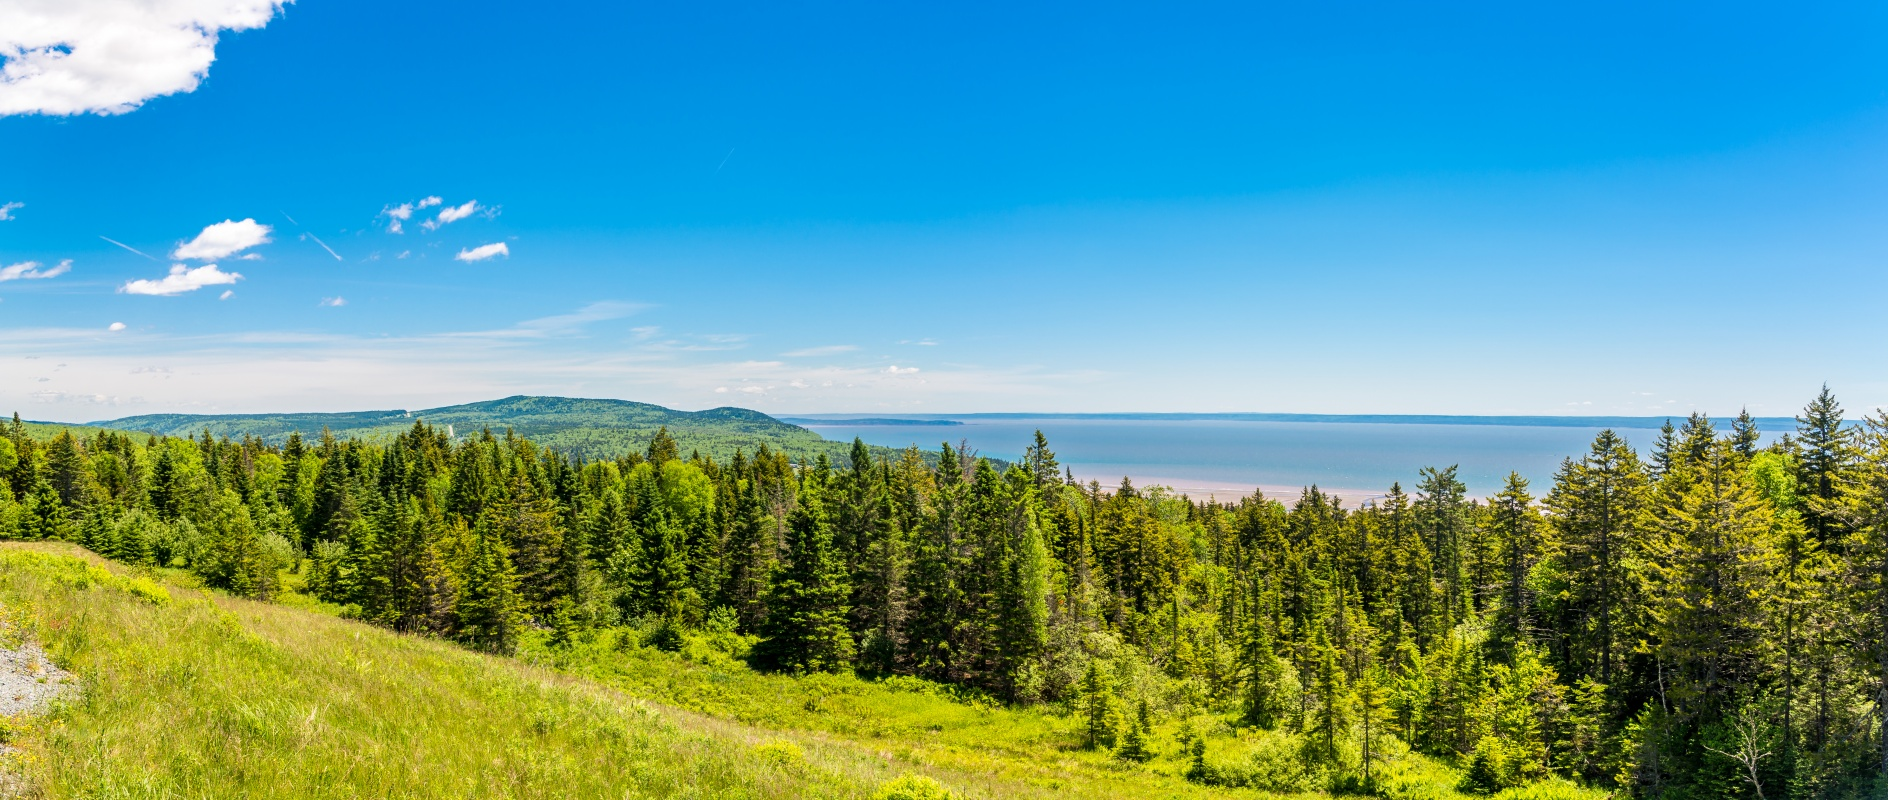 The shore of new Brunswick with the ocean in the background and evergreen trees in the foreground